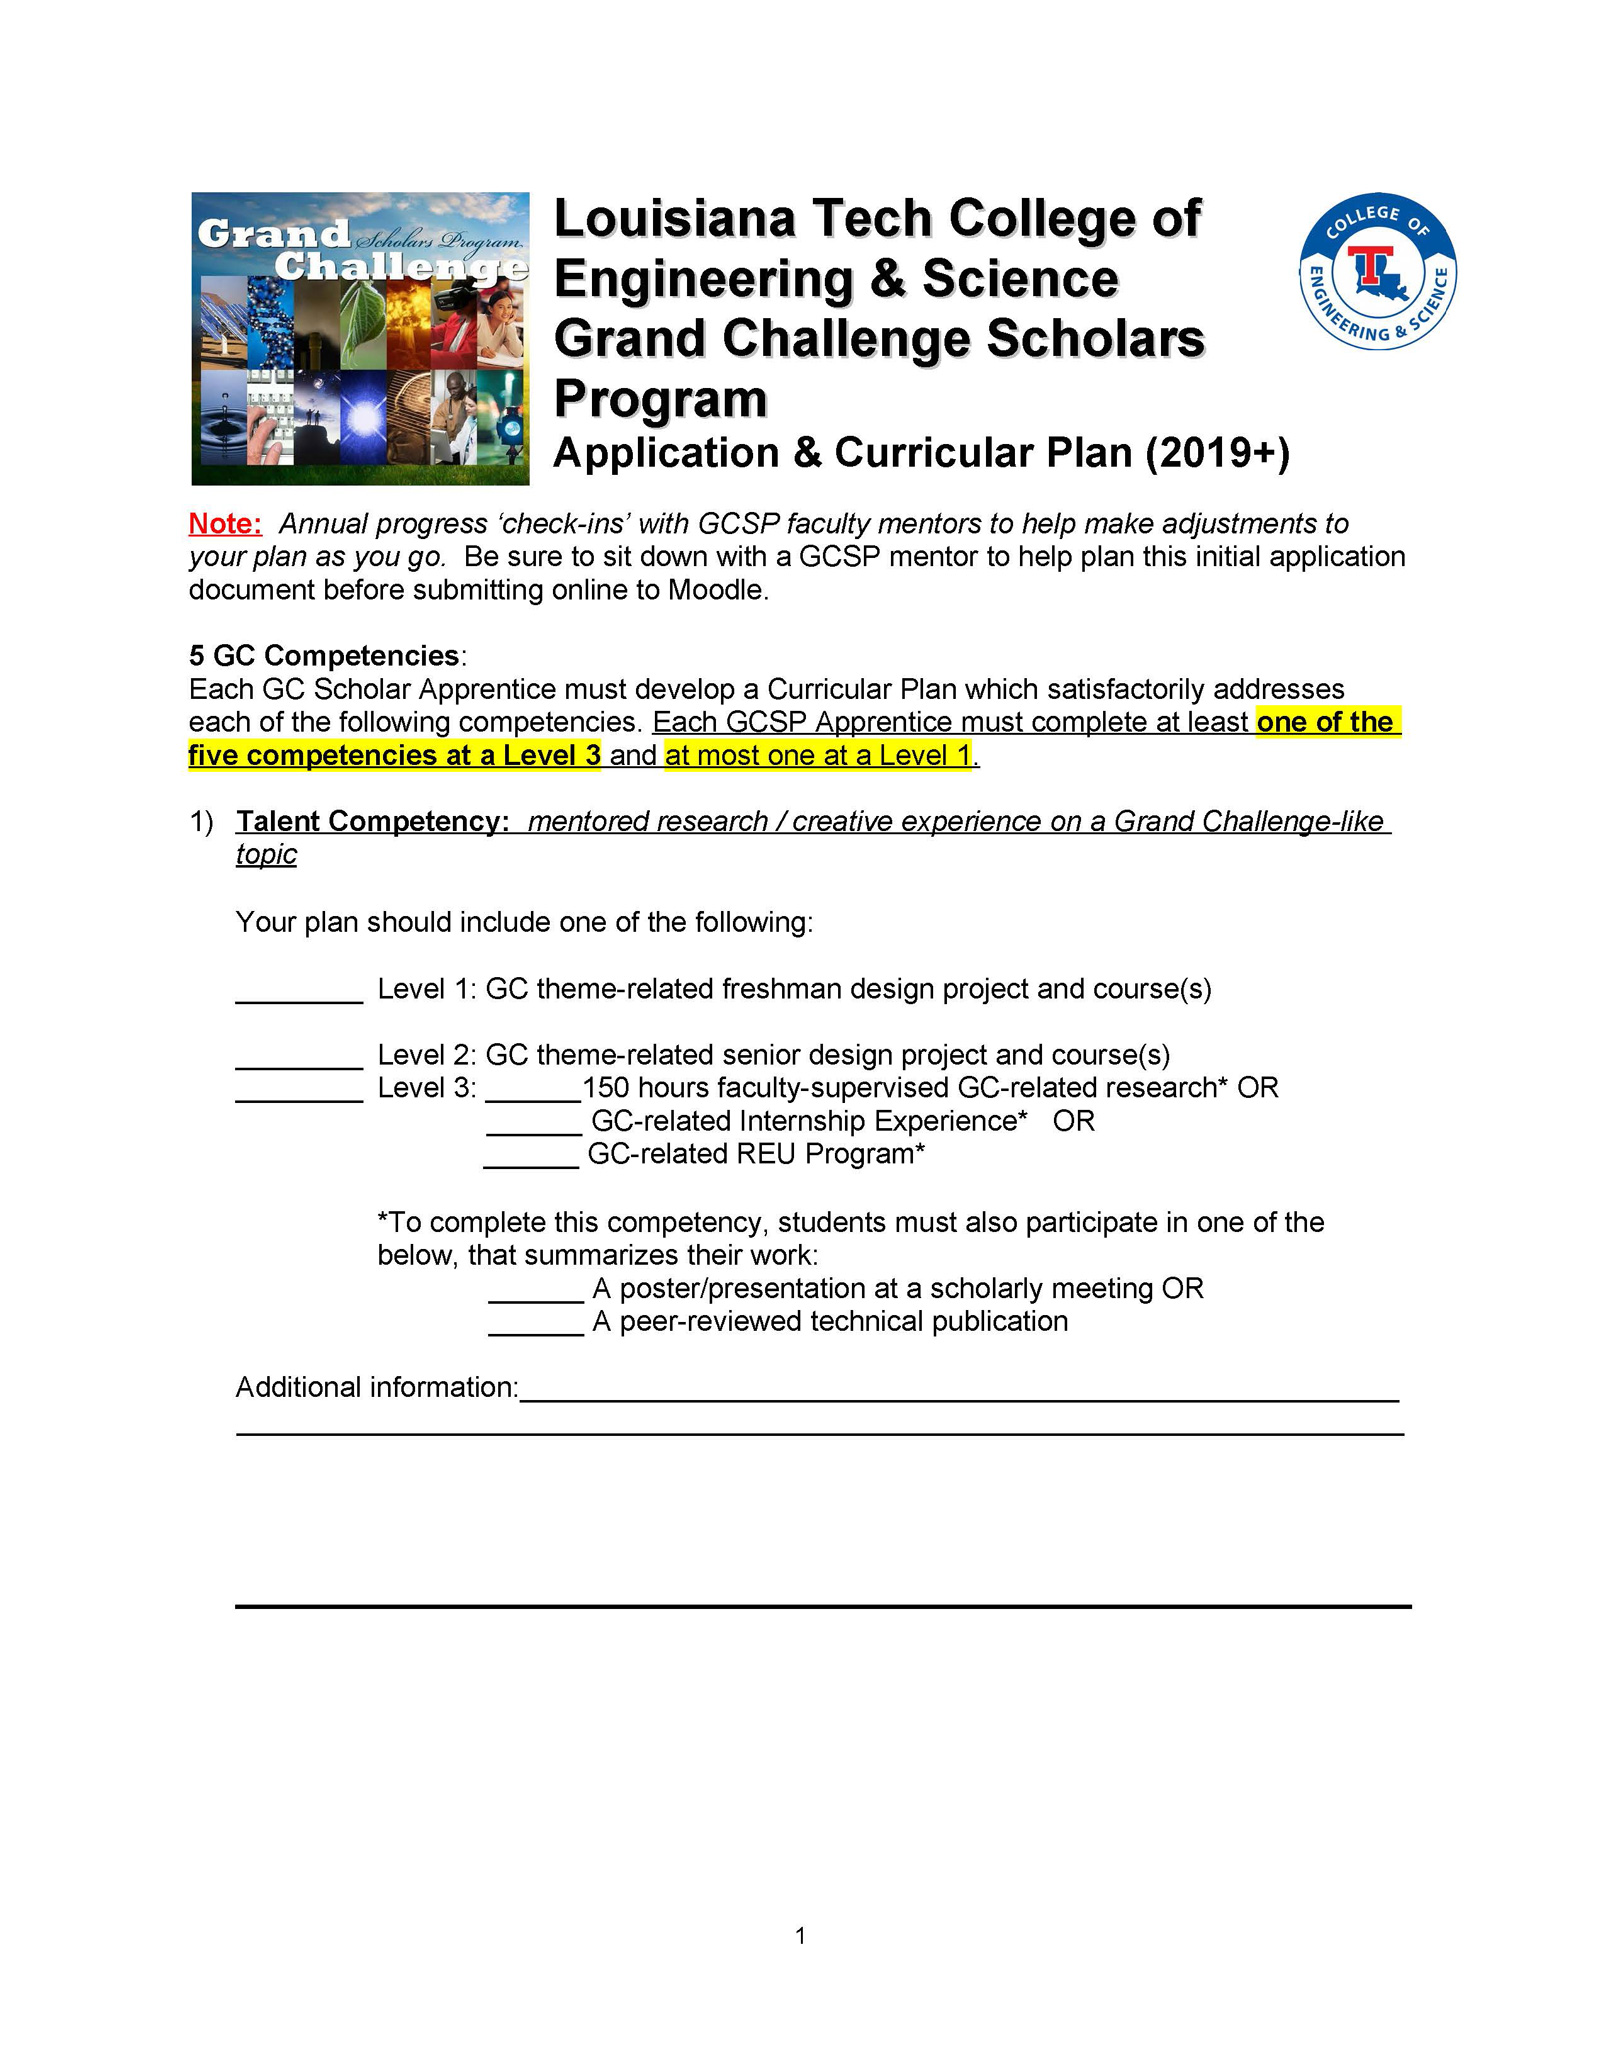 Louisiana Tech College of Engineering & Science Grand Challenge Scholars Program Application & Curricular Plan (2019+) Note: Annual progress 'check-ins' with GCSP faculty mentors to help make adjustments to your plan as you go. Be sure to sit down with a GCSP mentor to help plan this initial application document before submitting online to Moodle. 5 GC Competencies: Each GC Scholar Apprentice must develop a Curricular Plan which satisfactorily addresses each of the following competencies. Each GCSP Apprentice must complete at least one of the five competencies at a Level 3 and at most one at a Level 1 . 1) Talent Competency: mentored research / creative experience on a Grand Challenge-like topic Your plan should include one of the following: ________ Level 1: GC theme-related freshman design project and course(s) ________ Level 2: GC theme-related senior design project and course(s) ________ Level 3: ______150 hours faculty-supervised GC-related research* OR ______ GC-related Internship Experience* OR ______ GC-related REU Program* *To complete this competency, students must also participate in one of the below, that summarizes their work: ______ A poster/presentation at a scholarly meeting OR ______ A peer-reviewed technical publication Additional information:_______________________________________________________ _________________________________________________________________________ 1